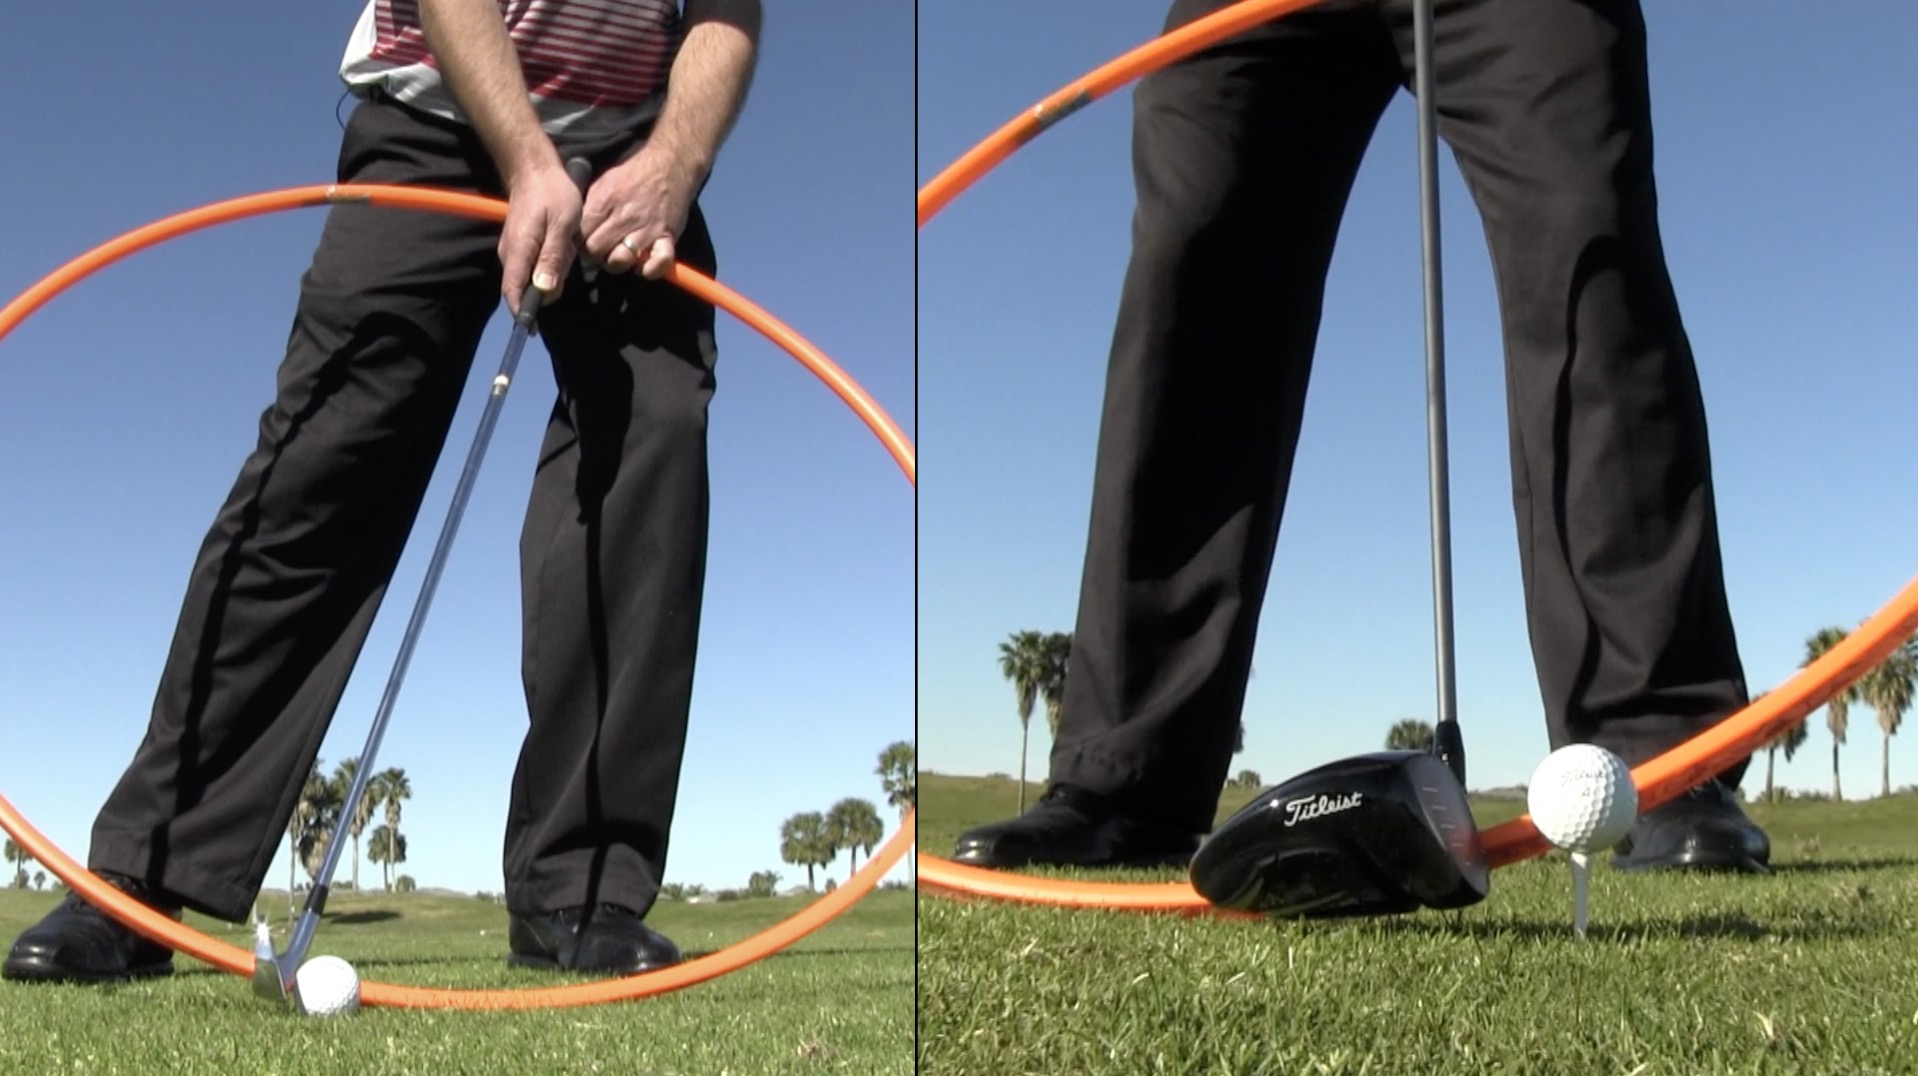 The Best Golf Swing for Drivers vs  Irons - USGolfTV